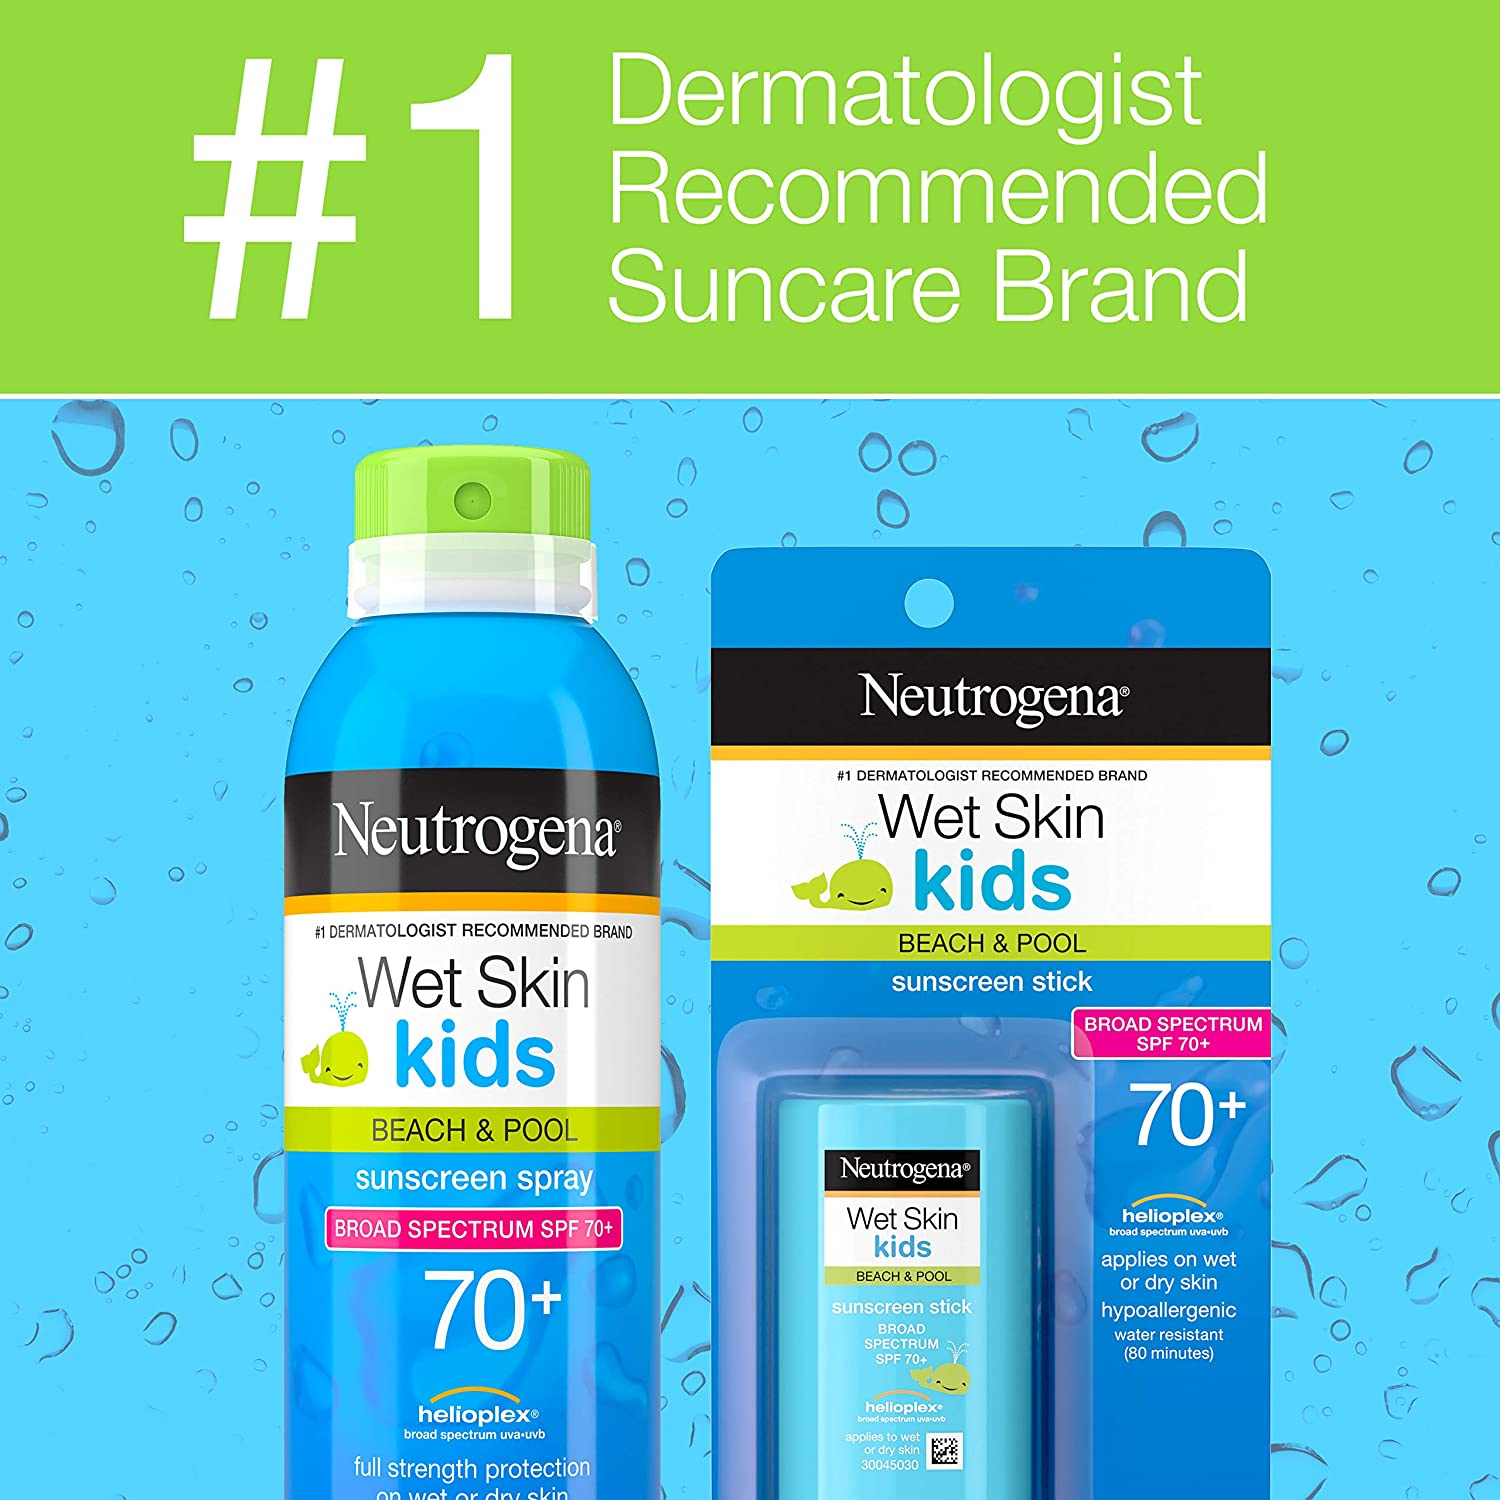 Neutrogena Wet Skin Kids Water Resistant Sunscreen Stick, Kids Sunscreen for Face and Body, Broad Spectrum SPF 70 UVA/UVB Sun Protection, Oil-Free & Hypoallergenic, 0.47 oz: Beauty